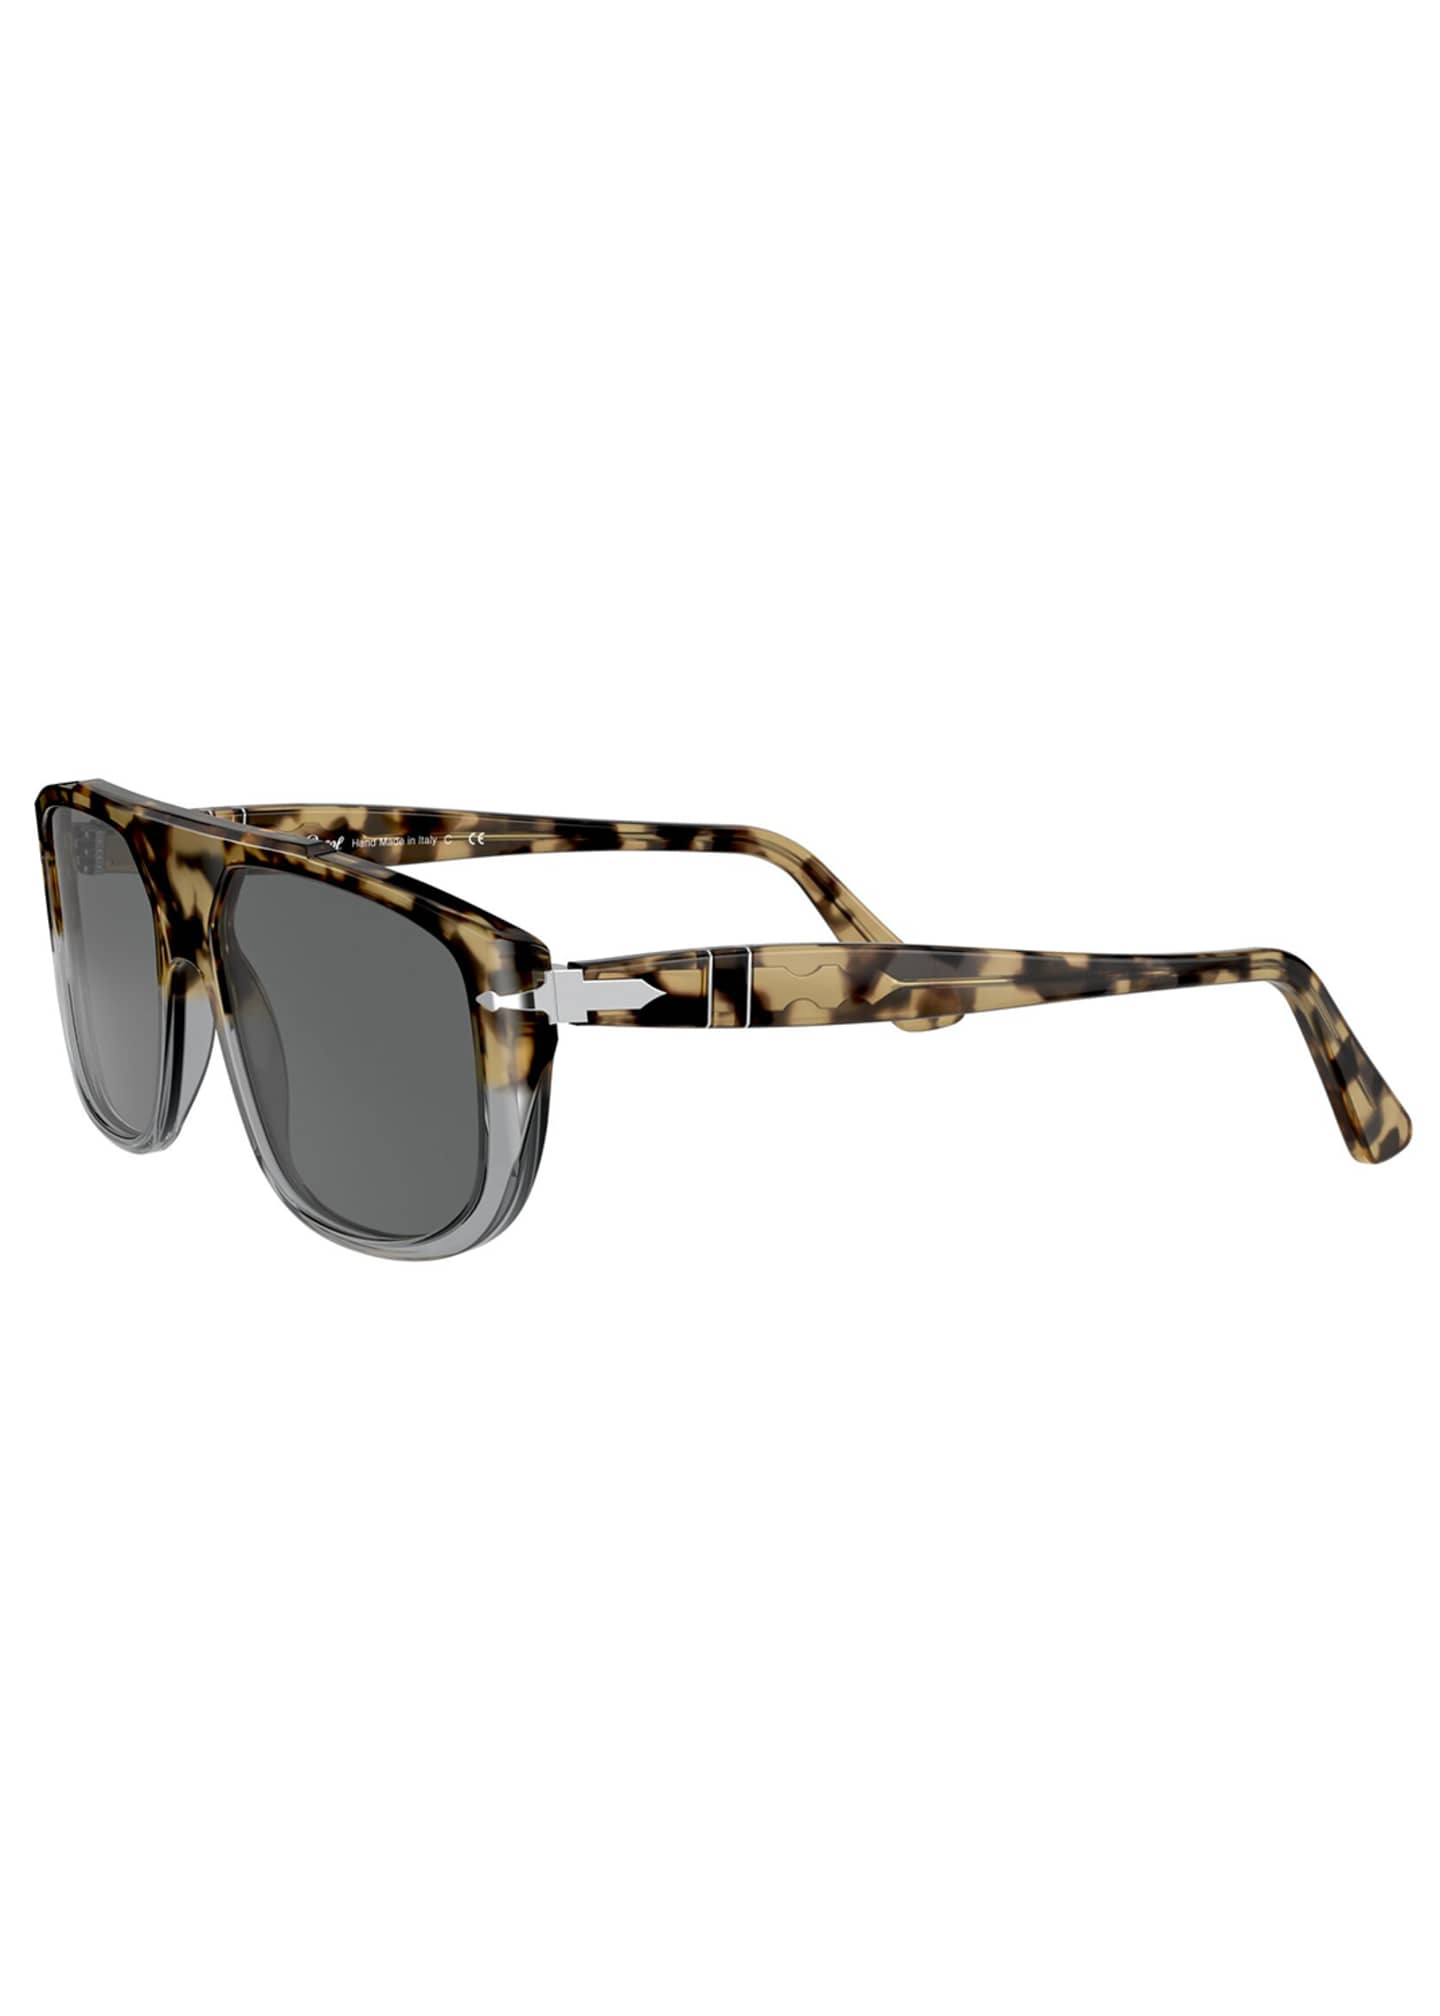 Image 4 of 4: Men's Square Colorblock Tortoiseshell Sunglasses